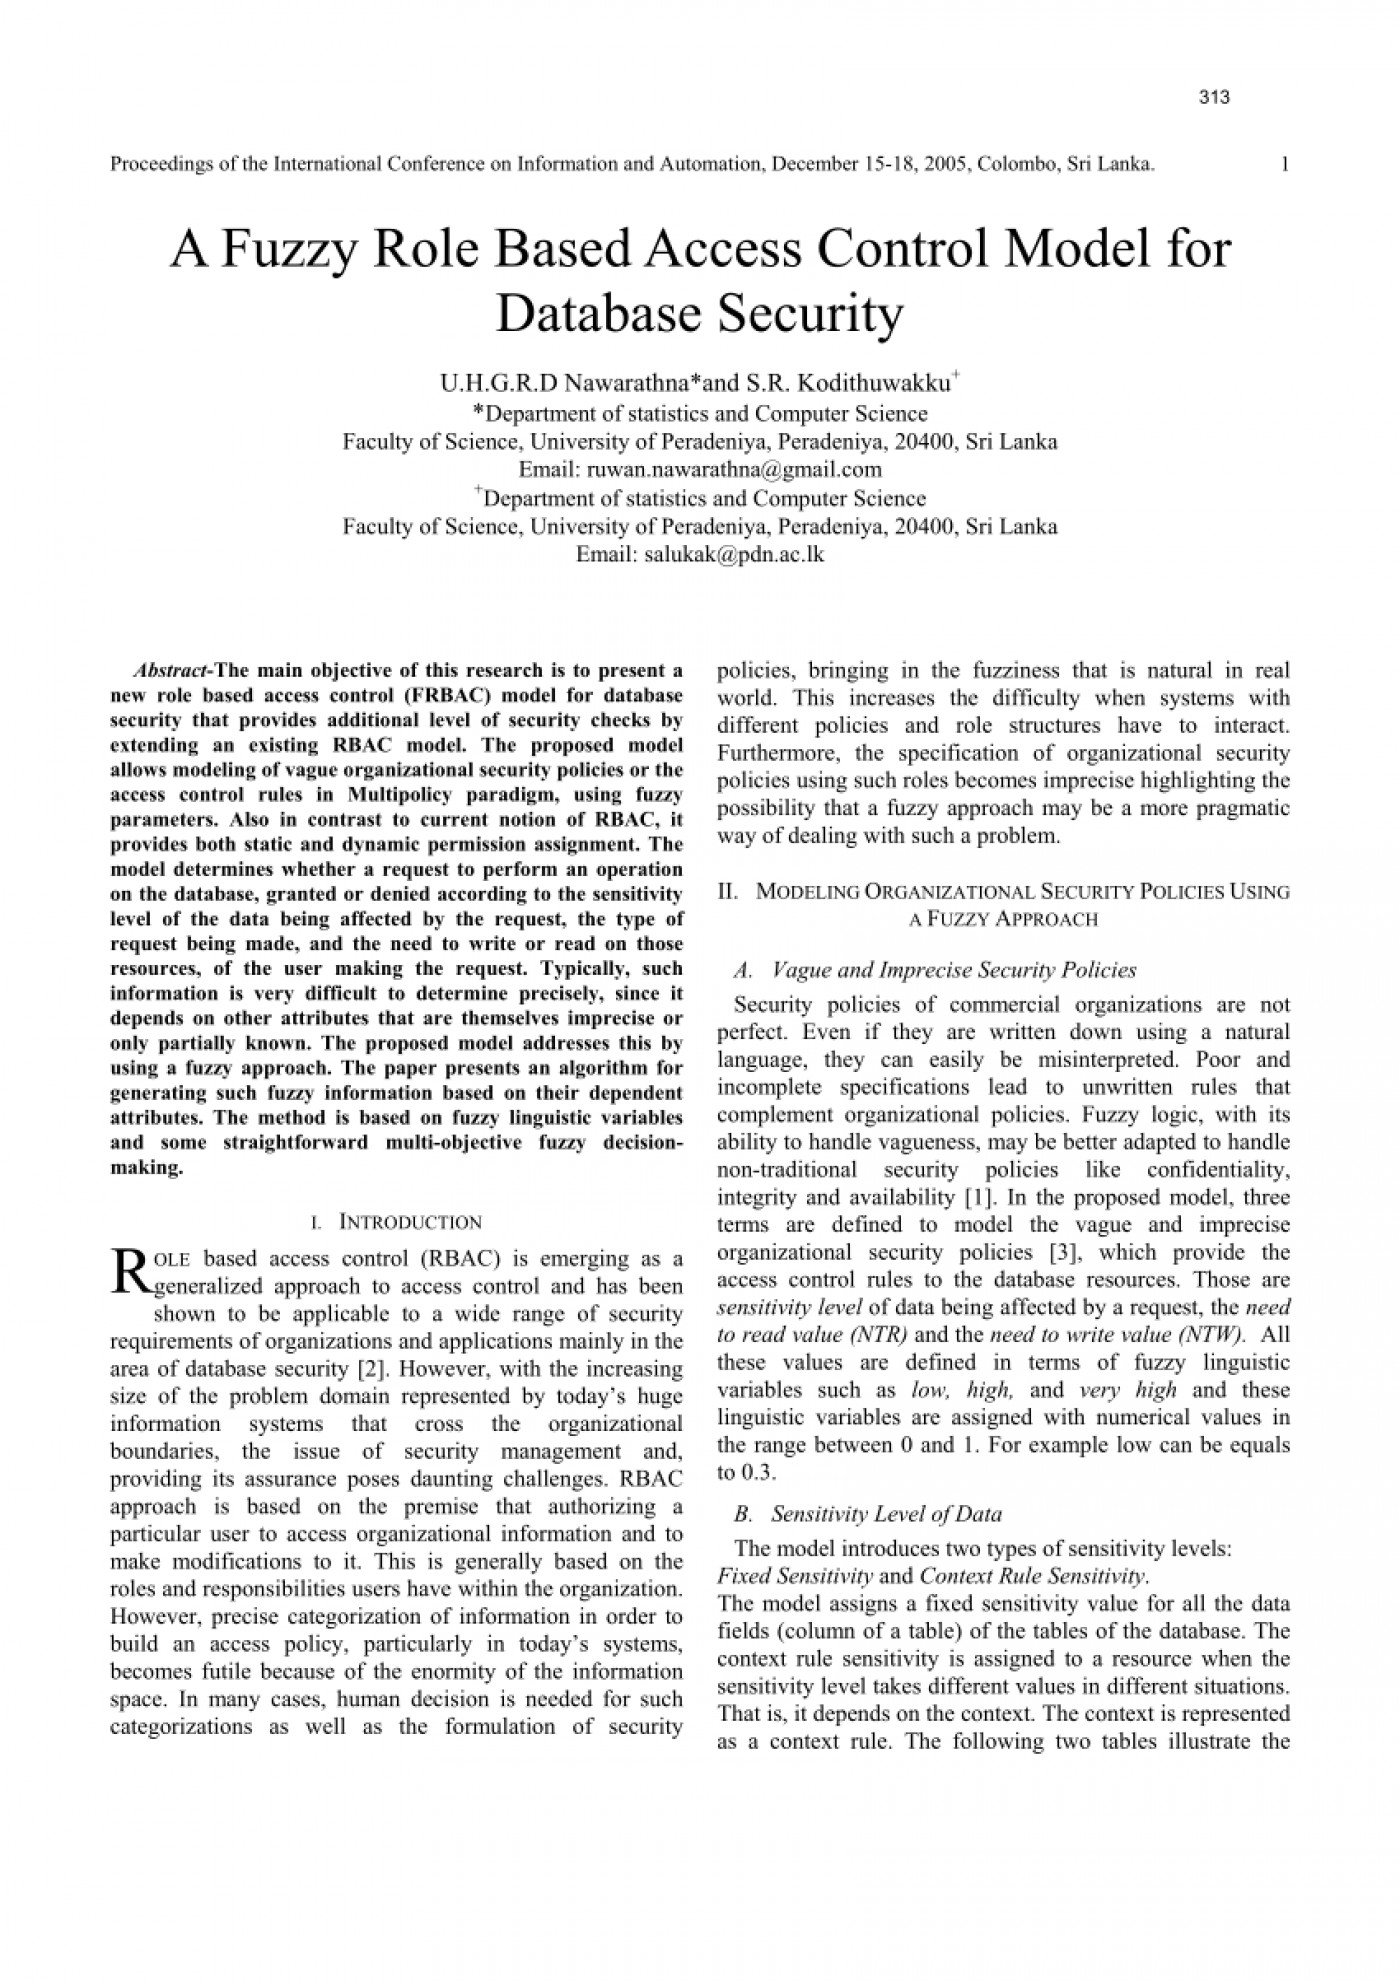 007 Database Security Research Paper Abstract Fascinating 1400